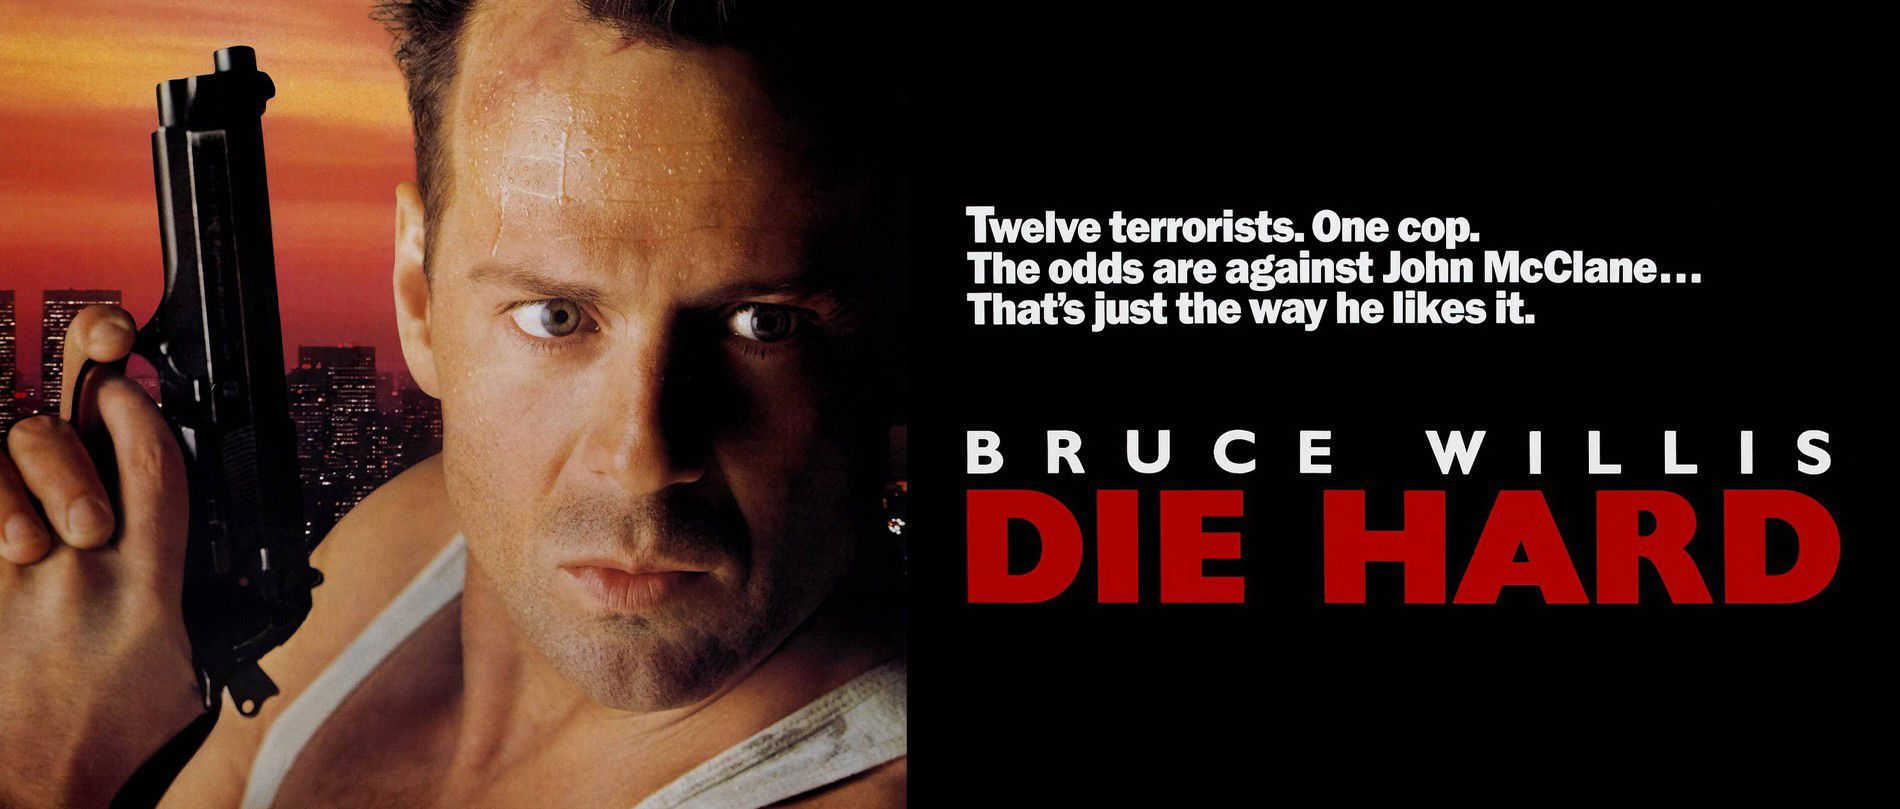 1988 Movie 'Die Hard' Brings Out True Meaning of Christmas ...